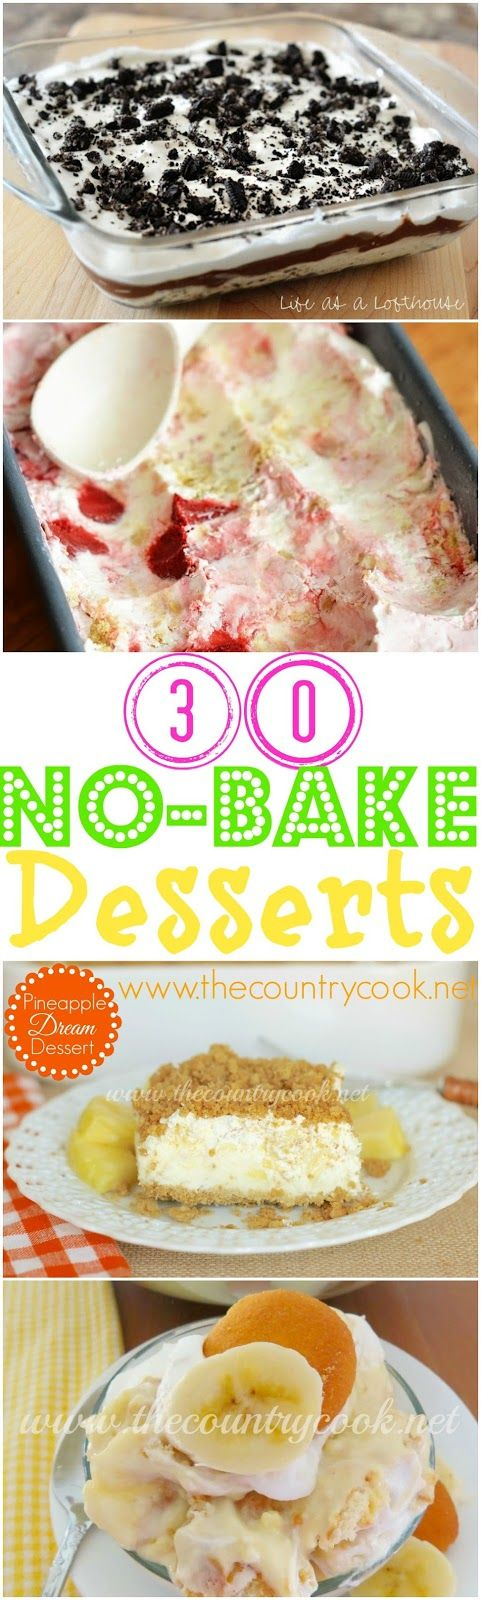 30 of the Best No-Bake Dessert Recipes from The Country Cook. No Bake, Summer, Dessert, sweets, easy, southern, simple